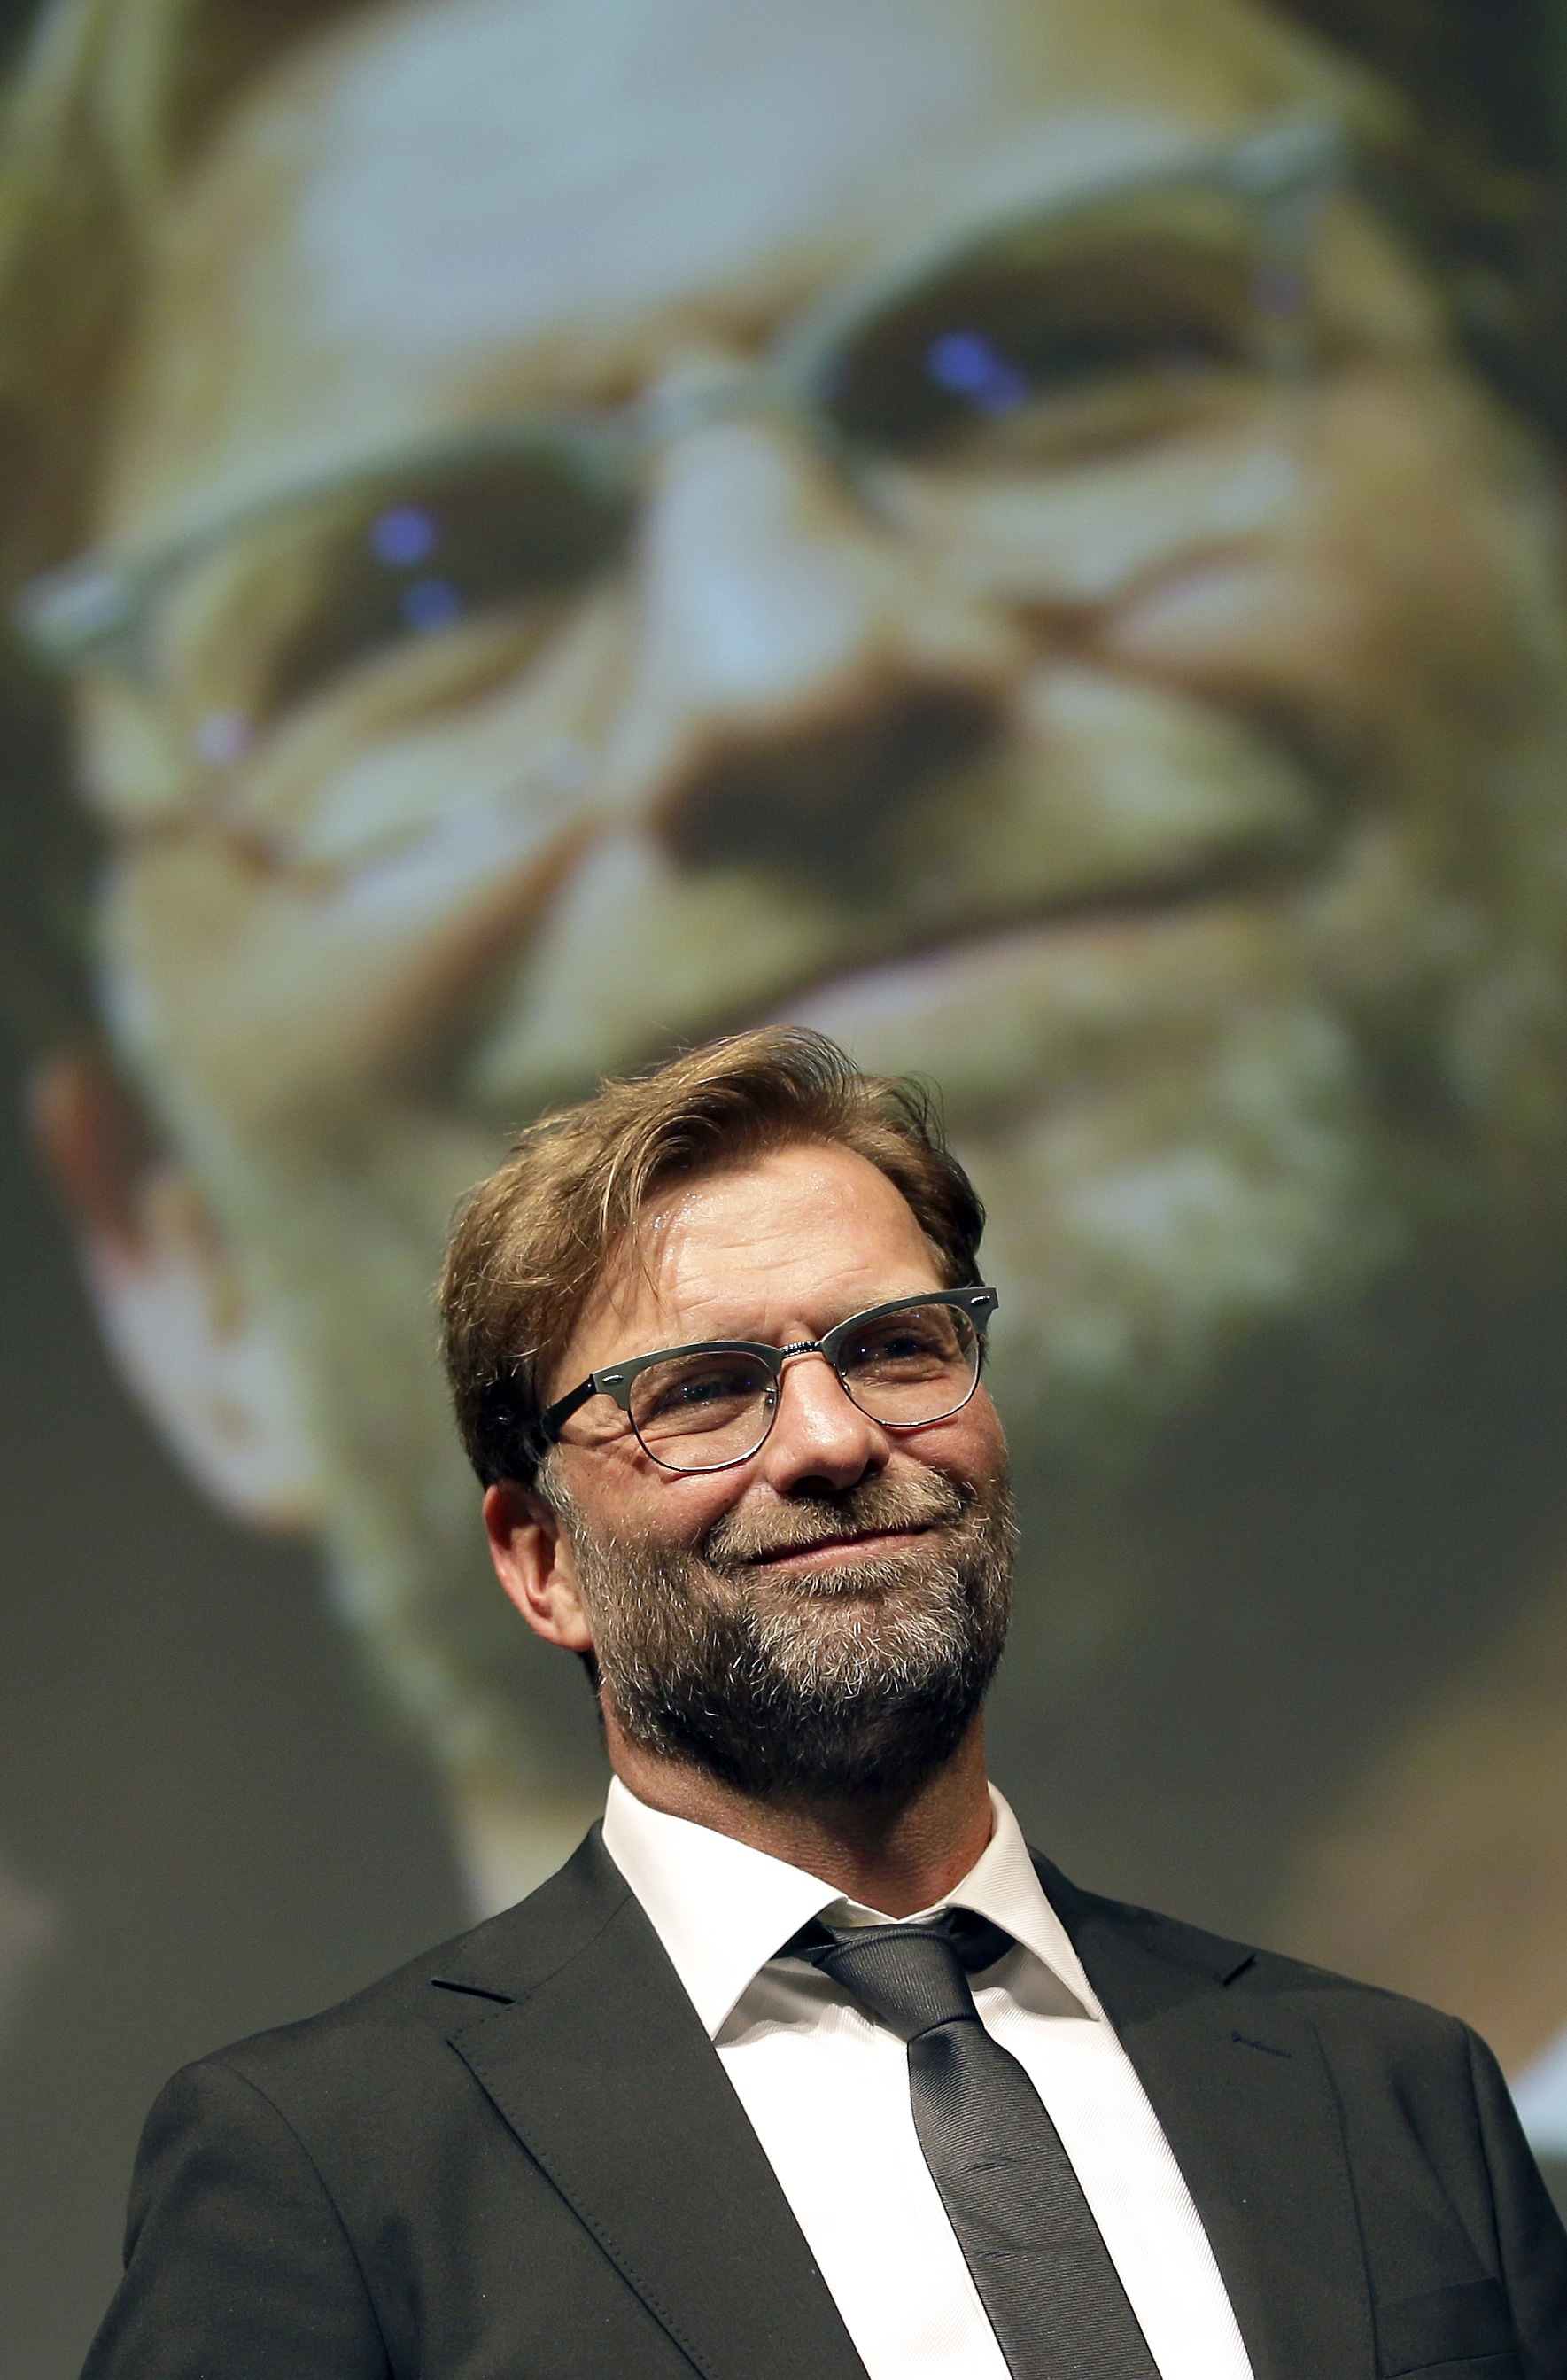 FILE - In this May 31, 2015 file photo Dortmund's head coach Juergen Klopp smiles during his fare well speech as part of a reception in Berlin, Germany, after the German soccer cup final match between Borussia Dortmund and VfL Wolfsburg.  (AP Photo/Michael Sohn,Pool)